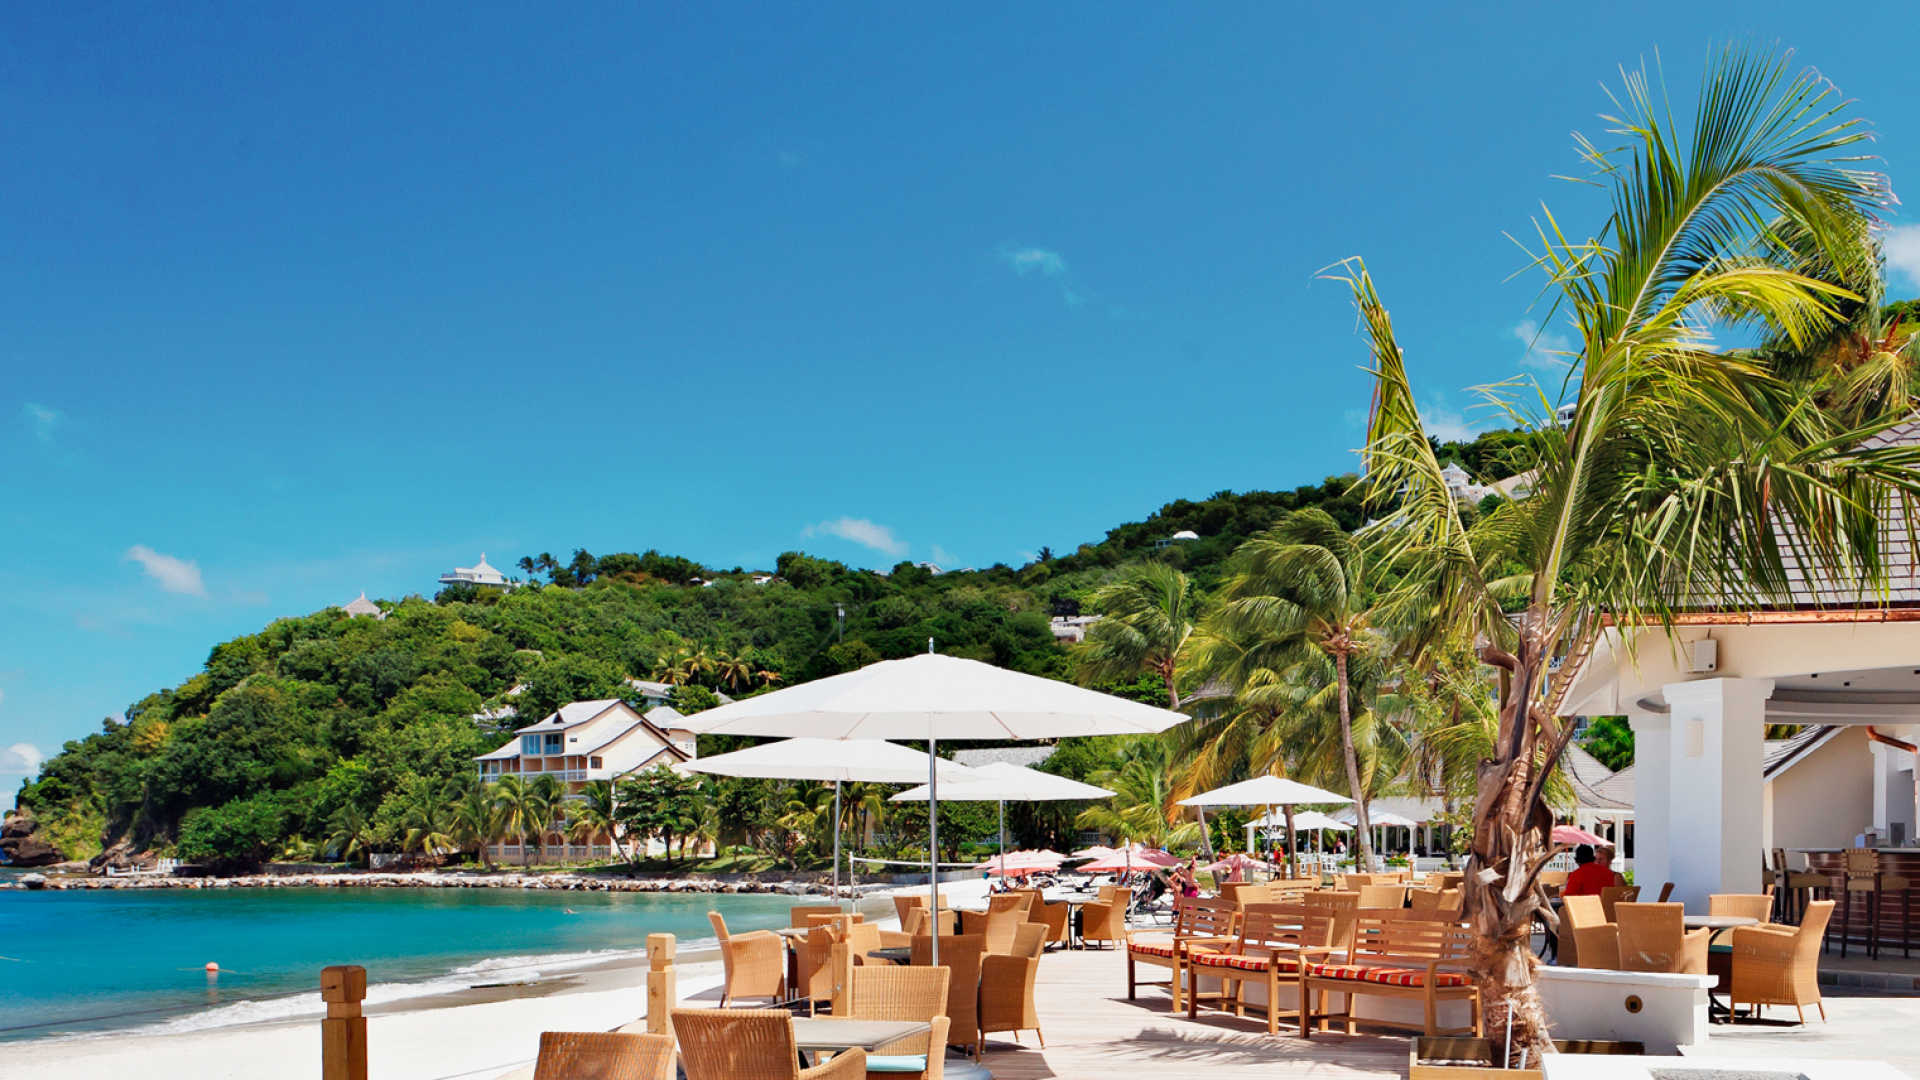 bodyholiday-saint-lucia-37372876-1557839754-ImageGalleryLightboxLarge